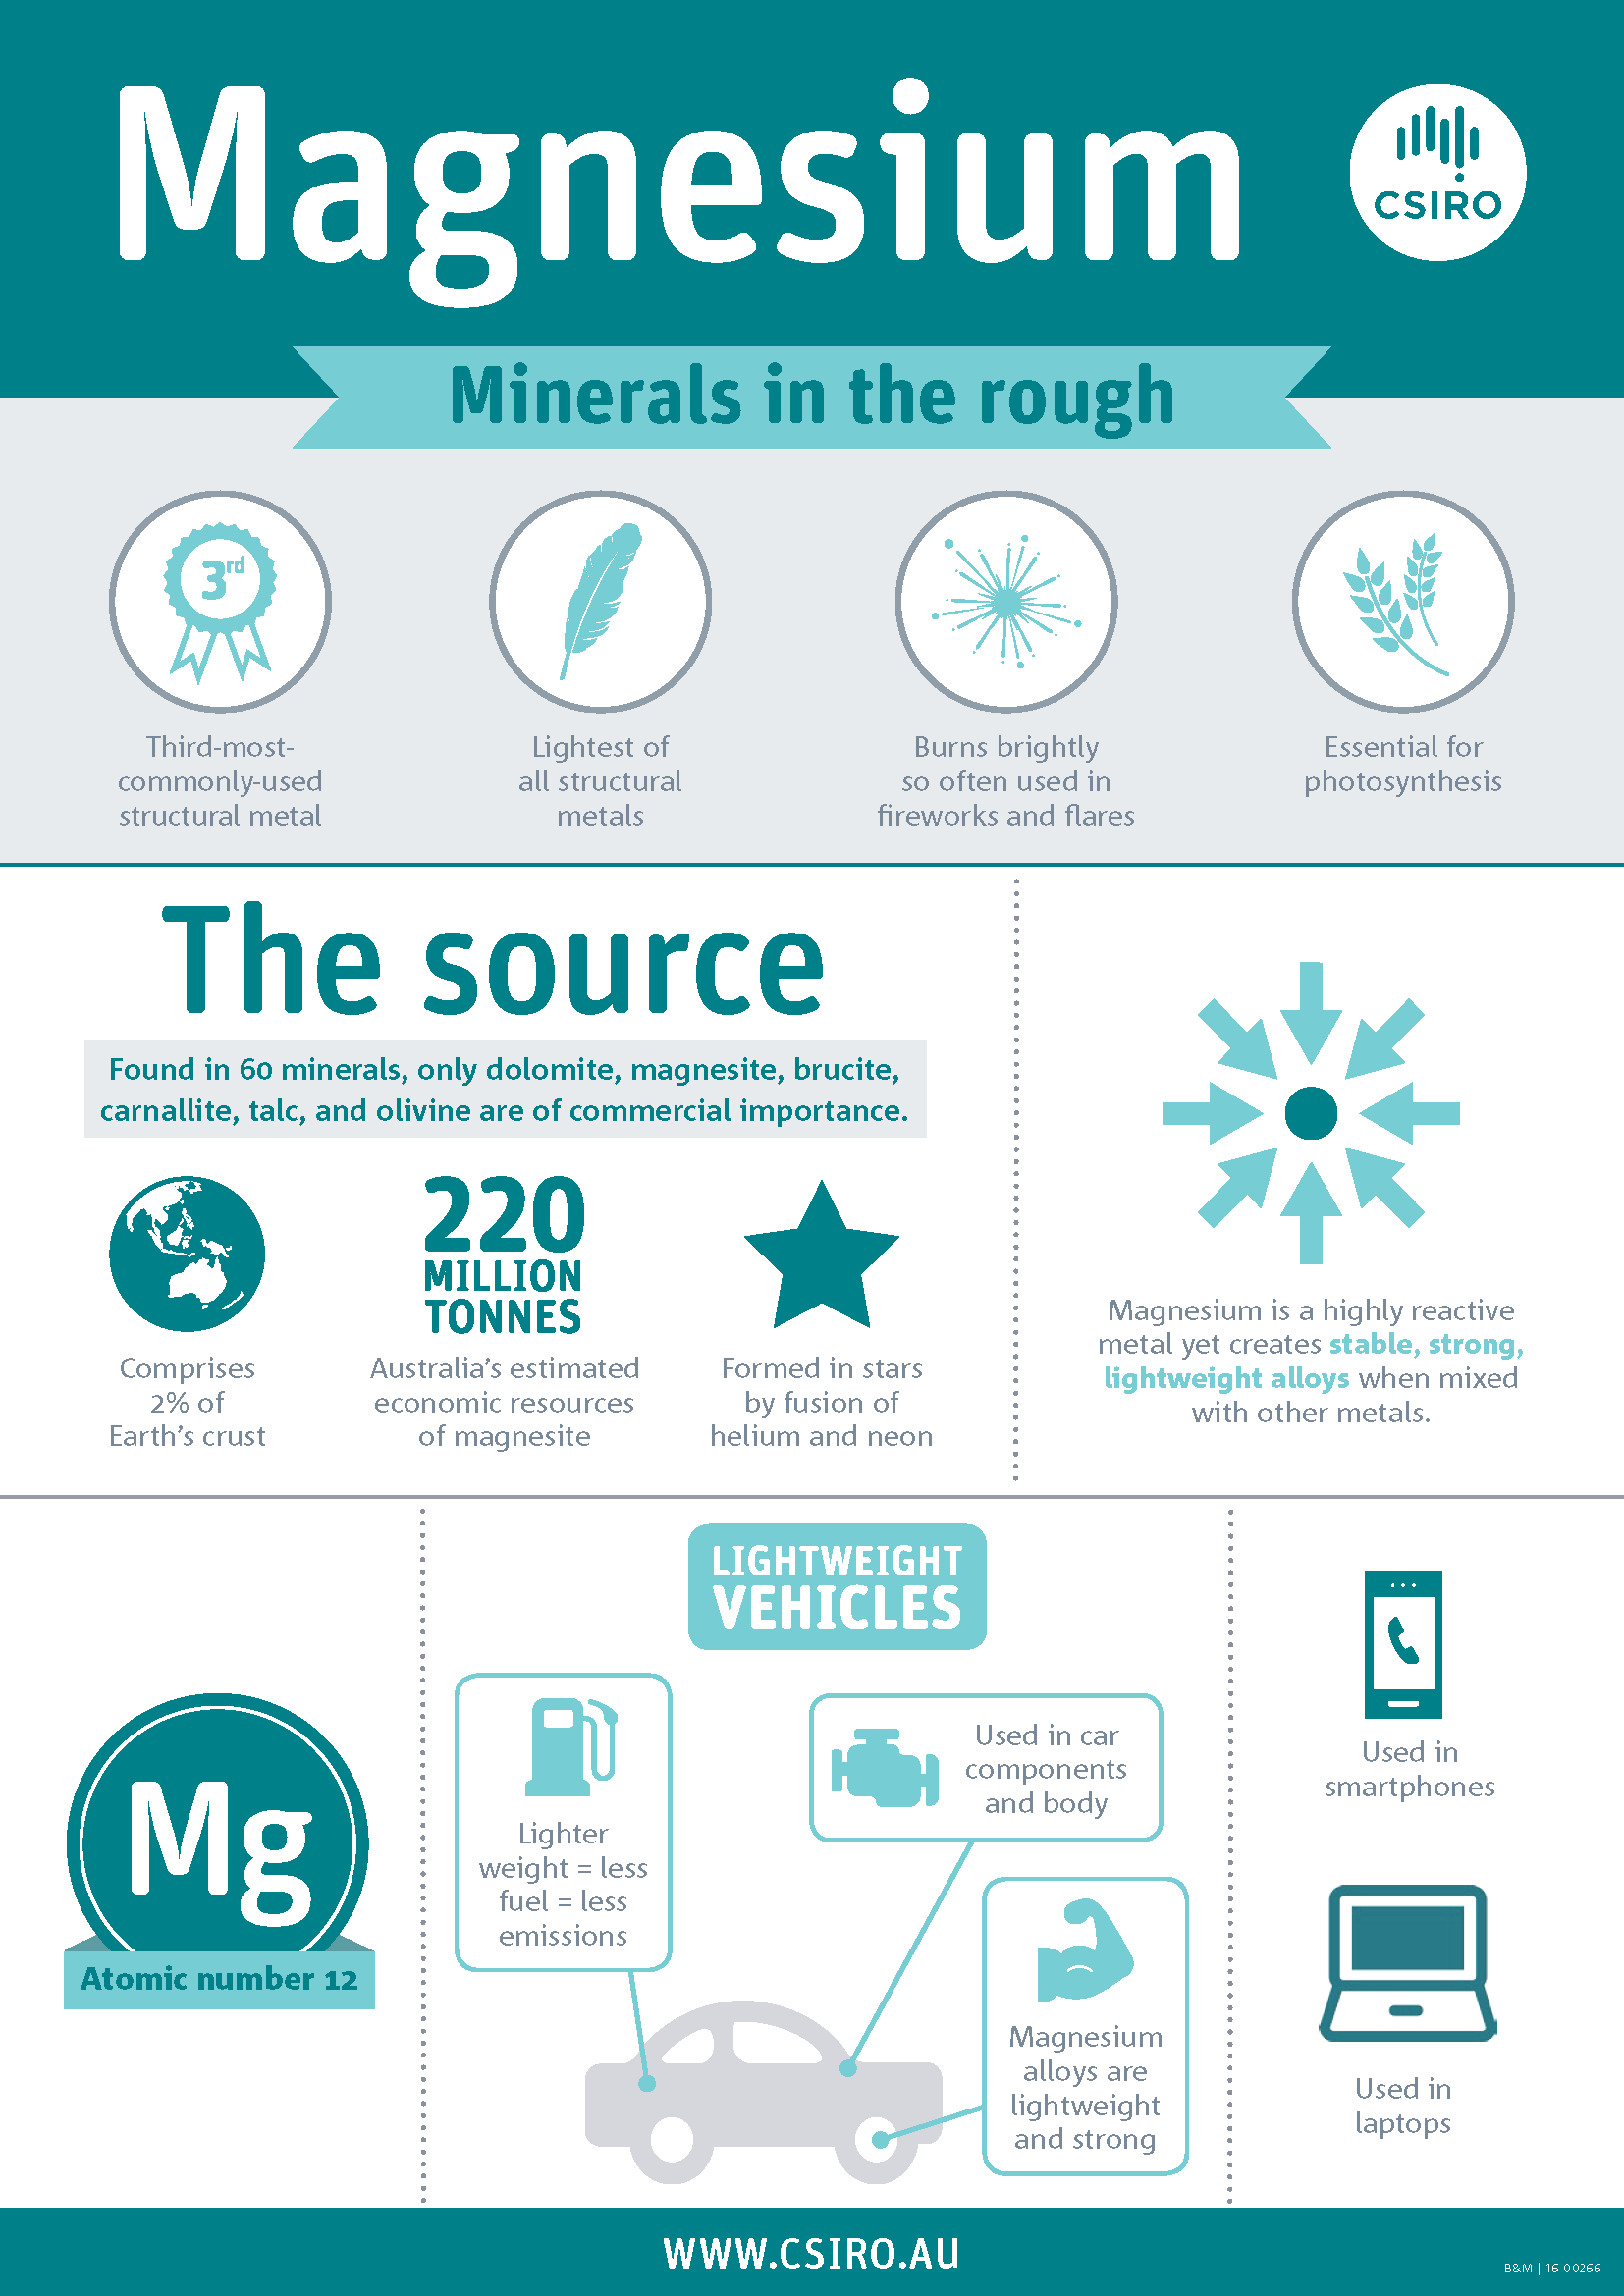 Magnesium infographic - information about magnesium and its use